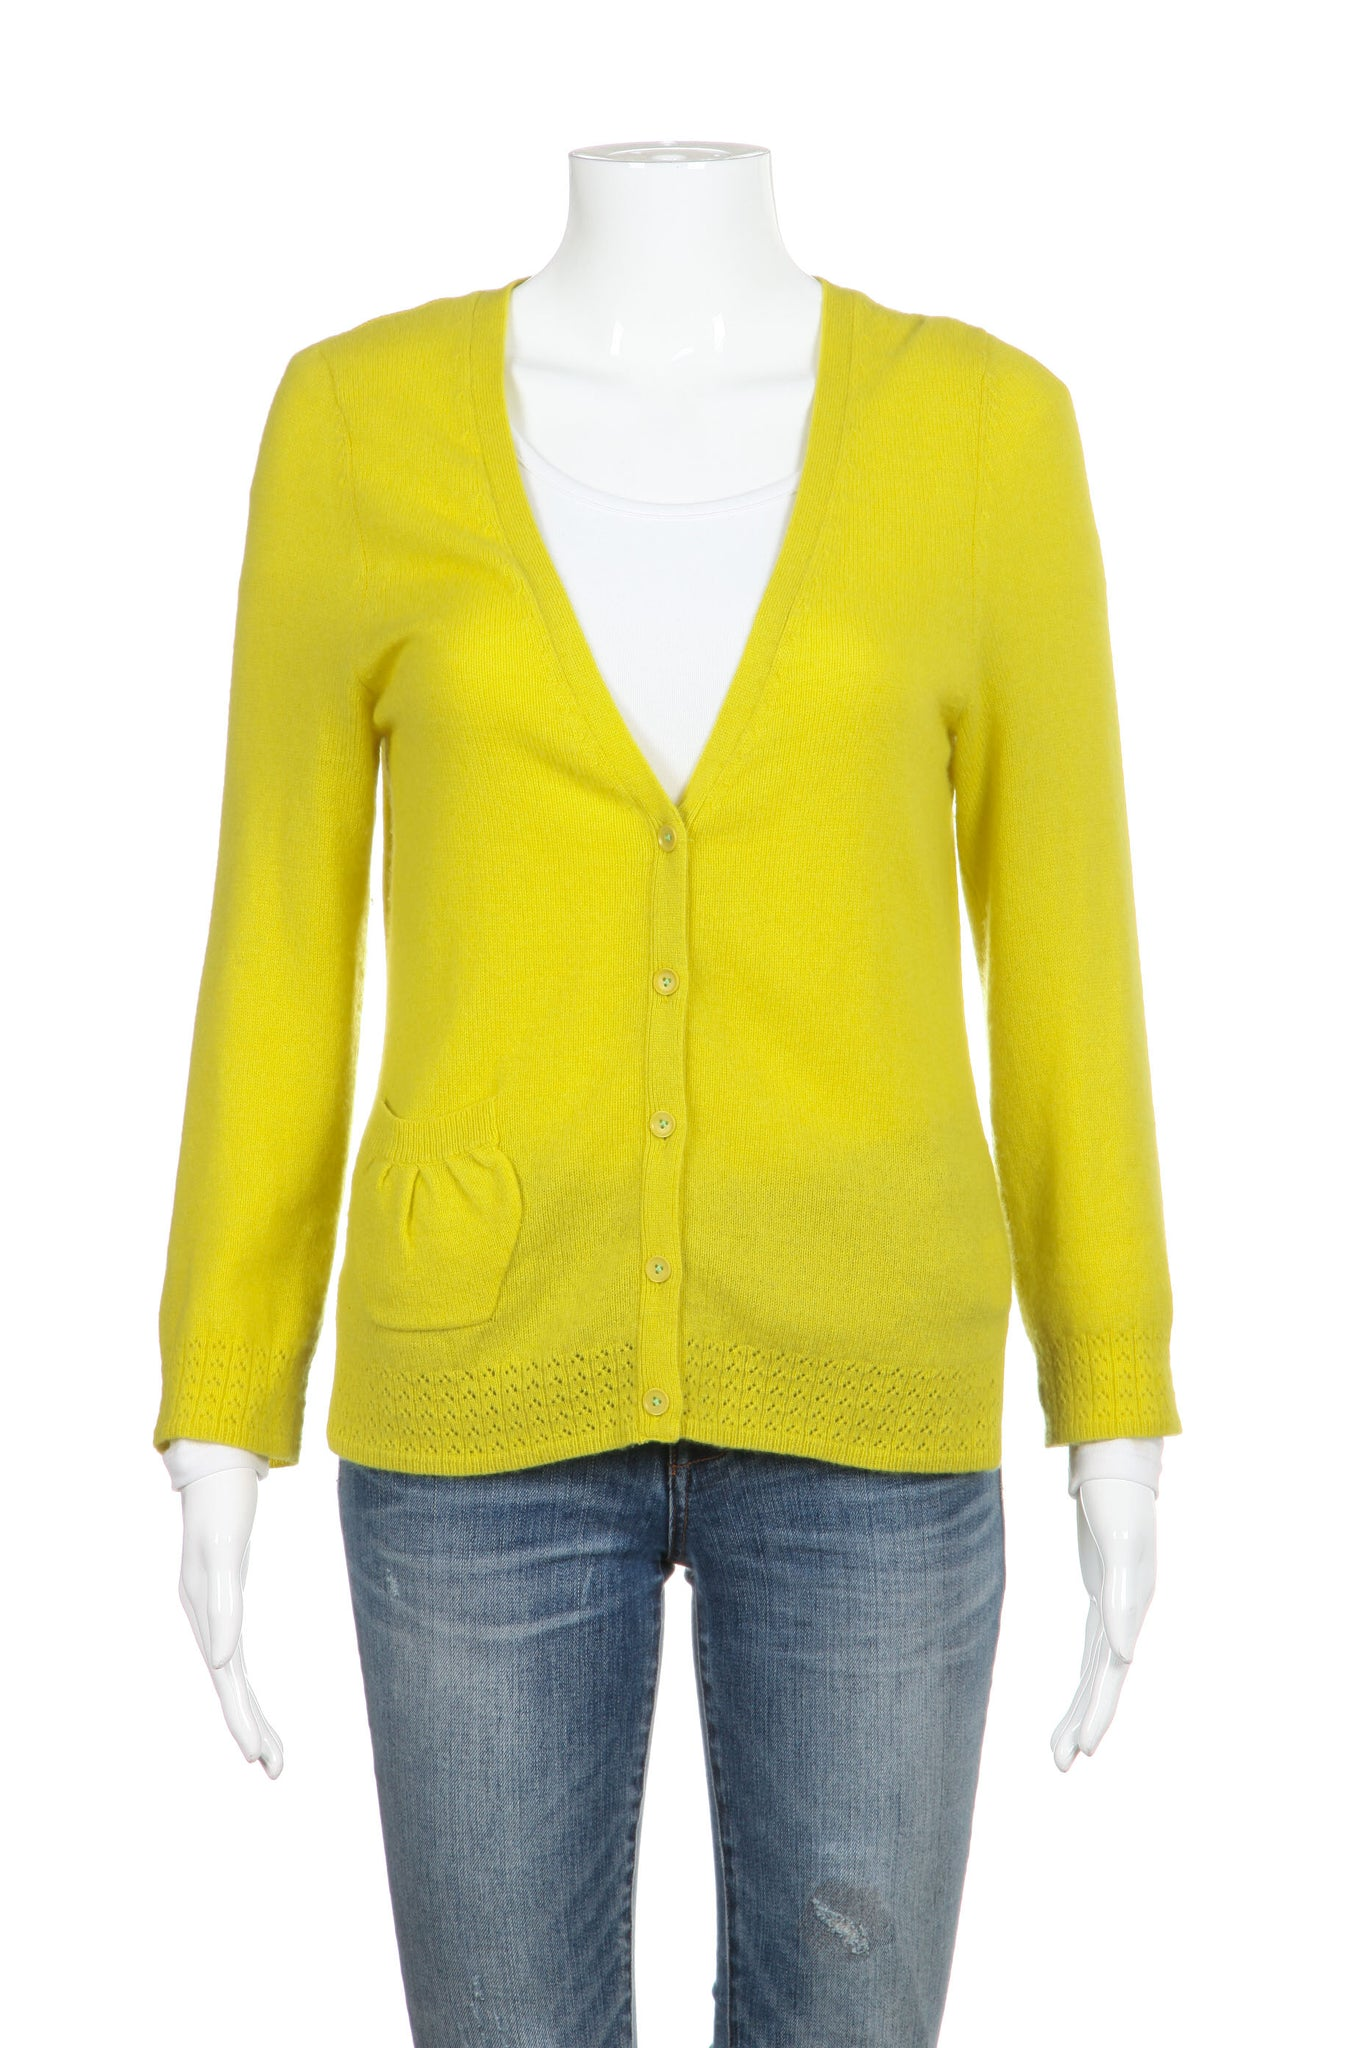 CHARLIE & ROBIN Cardigan Cashmere Yellow Sweater Size M